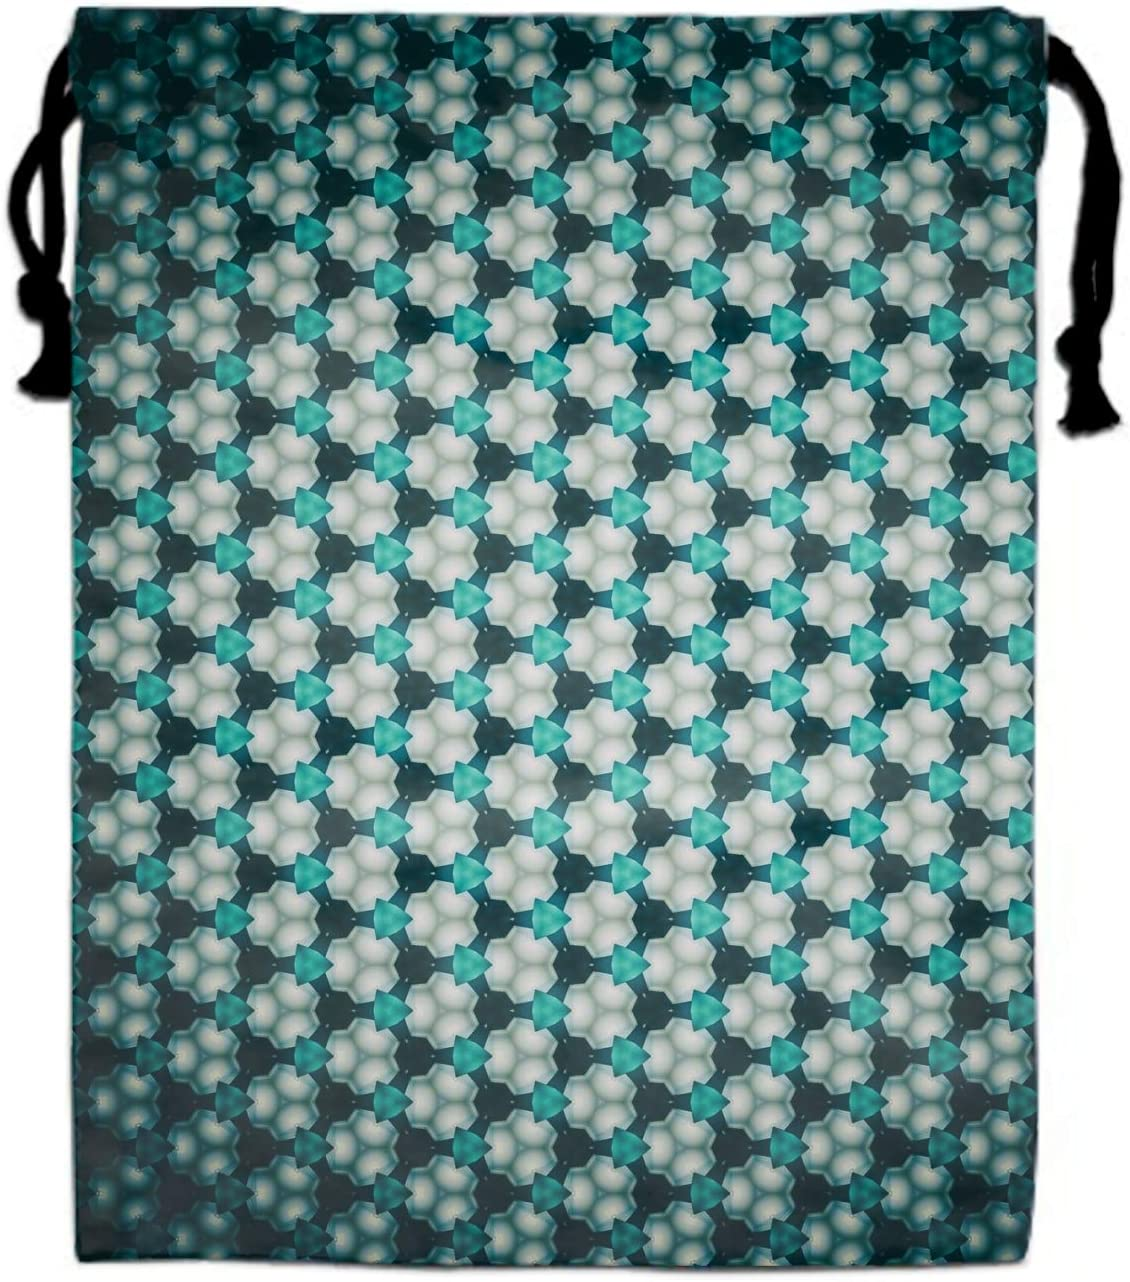 Fractal Patterns Glitter Abstraction Blue Backpack for Women and Girls Casual Daypack Book School Bag